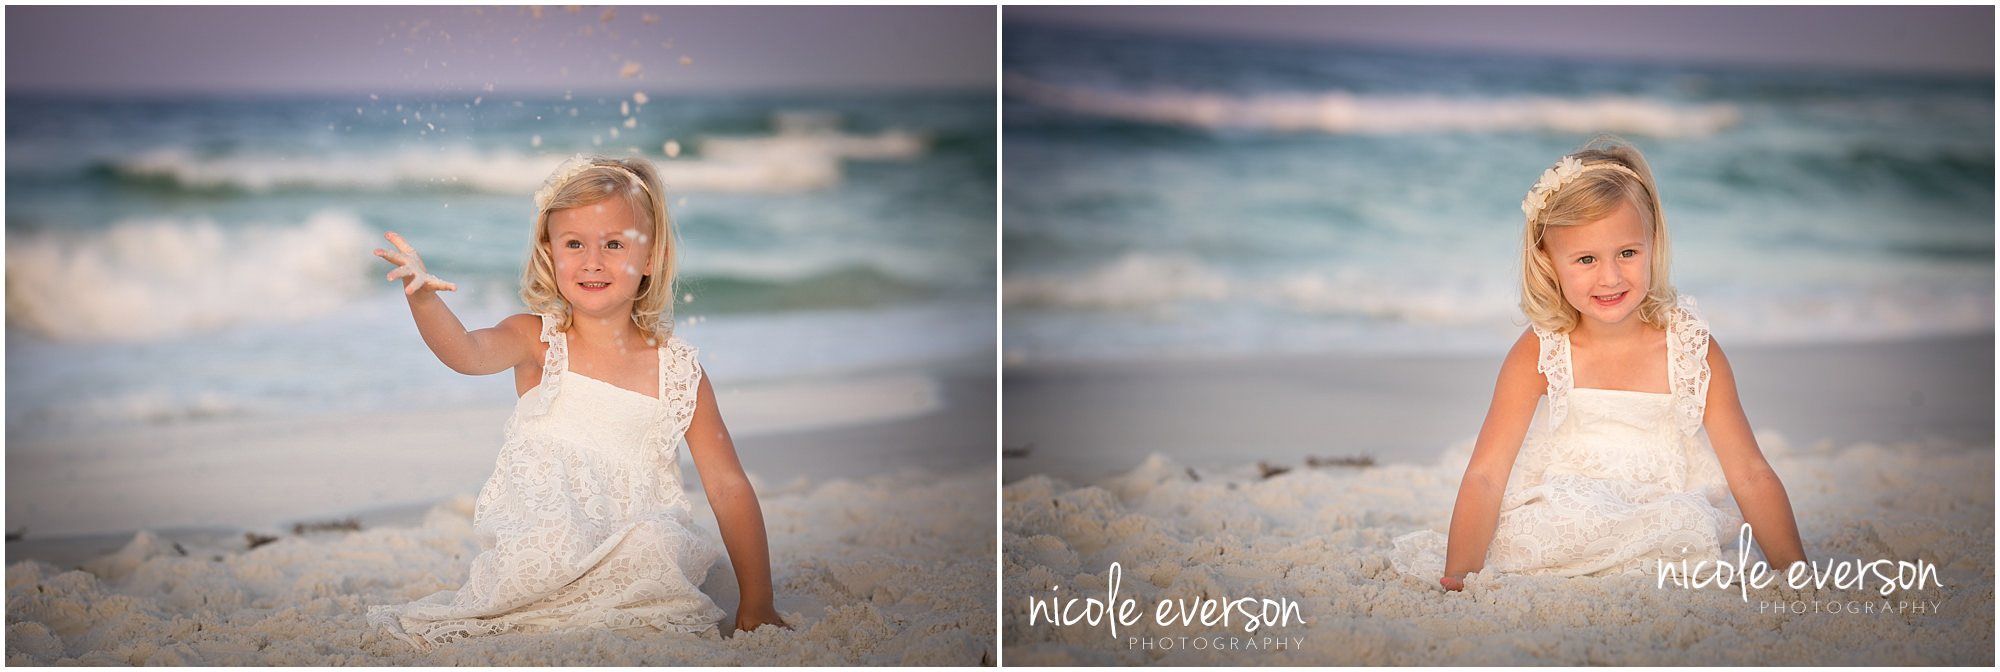 child in seaside beach photographed in a white dress by Nicole Everson Photography